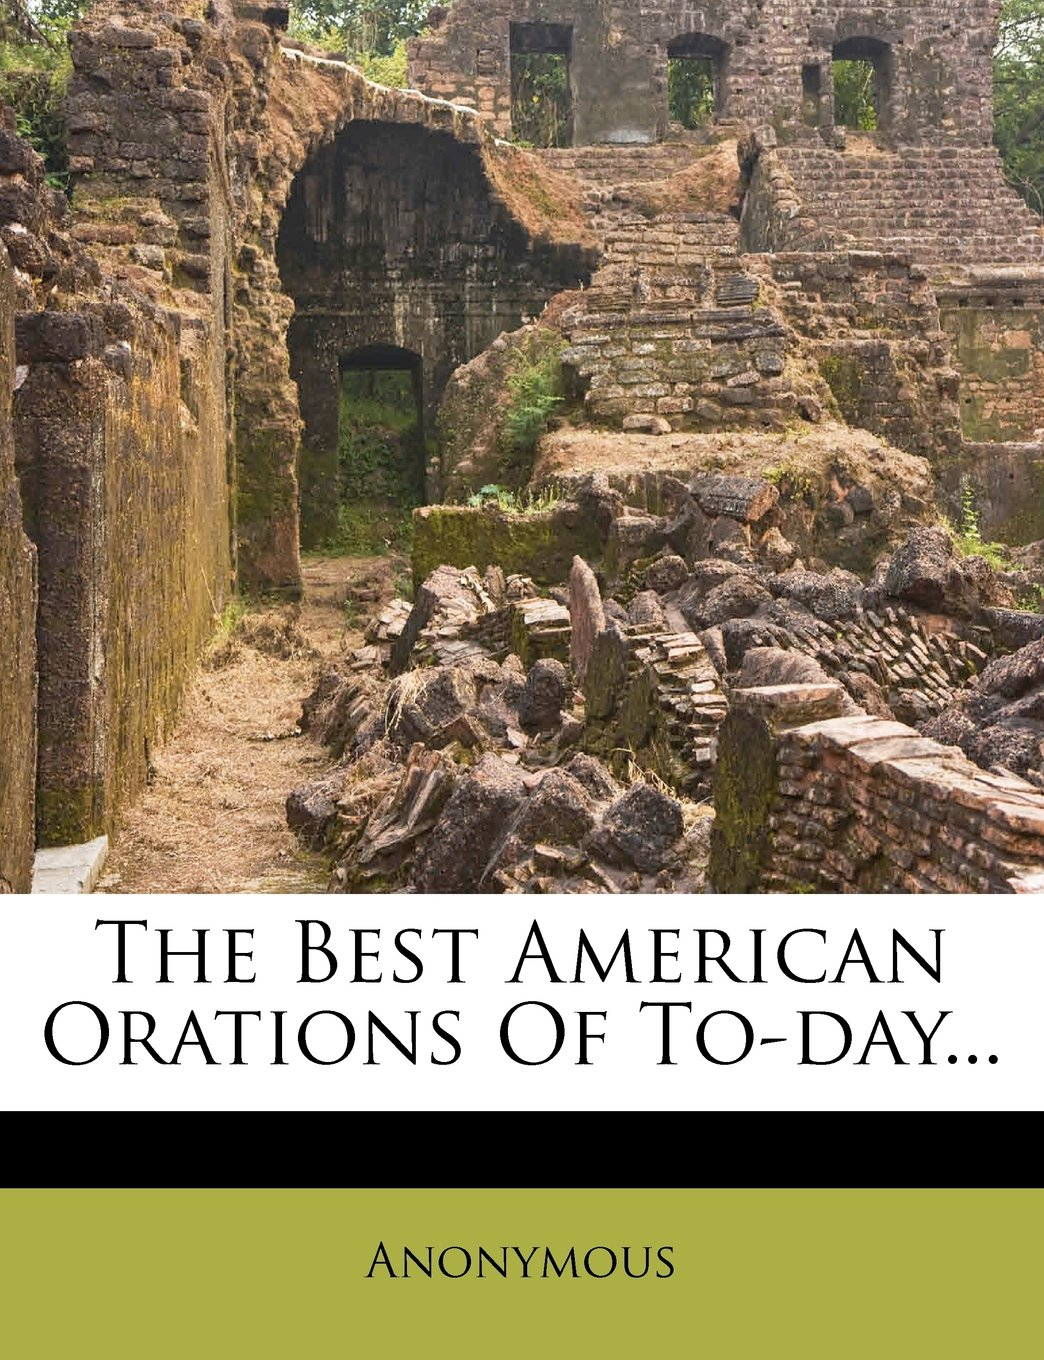 The Best American Orations Of To-day... PDF